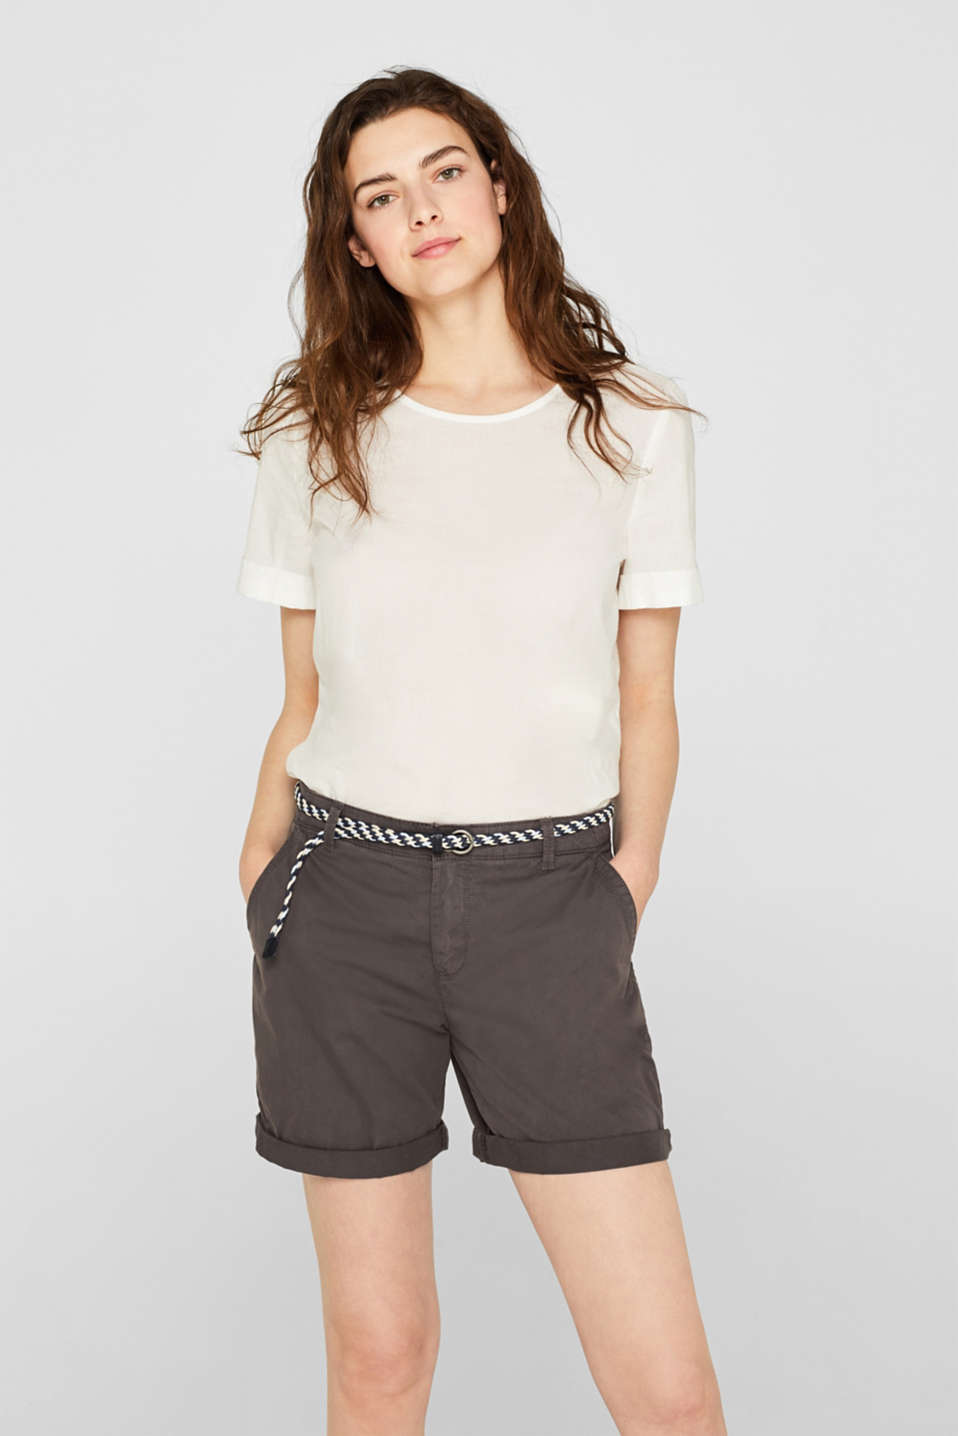 Shorts in a garment-washed look, 100% cotton, DARK GREY, detail image number 0